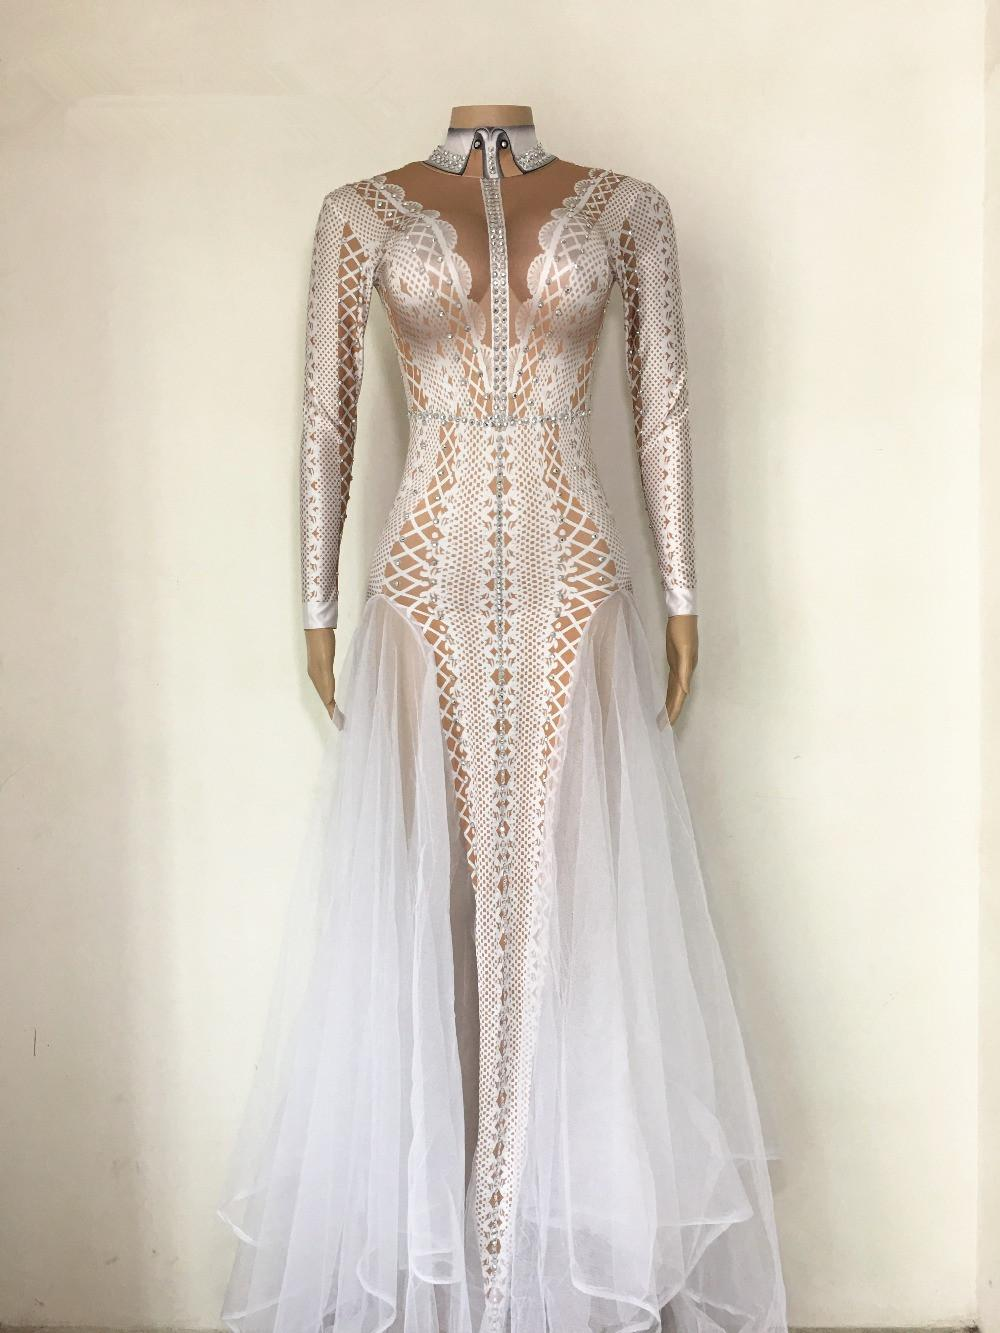 aeb8f9811cda 2019 Sexy Sparkly Stone Dress Women Summer Party Costume Stage Performance Wear  Dance Singer Rhinestones Ladies Long Dresses From Clothingdh, ...